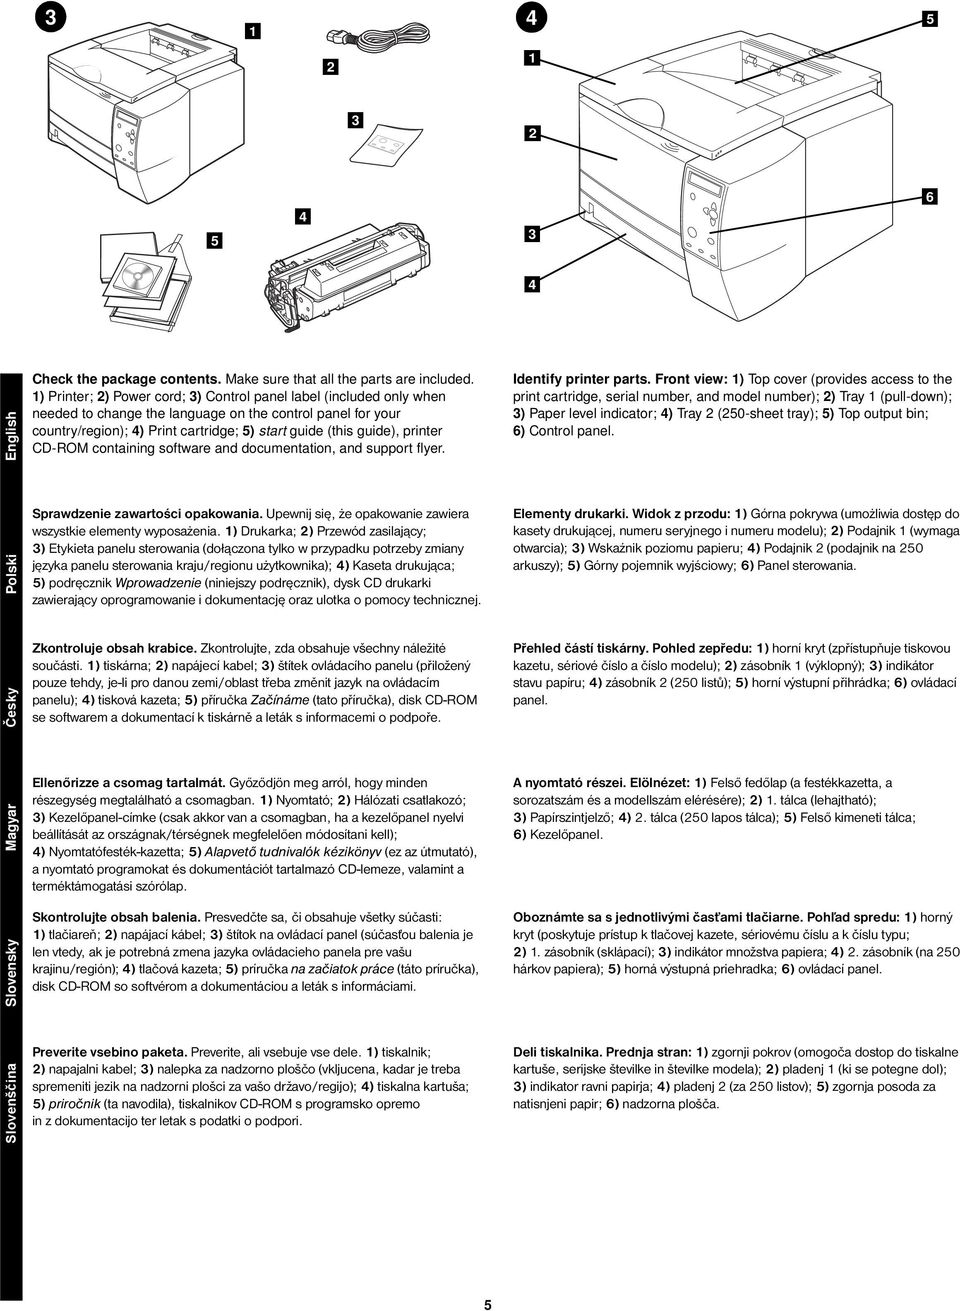 printer CD-ROM containing software and documentation, and support flyer. Identify printer parts.